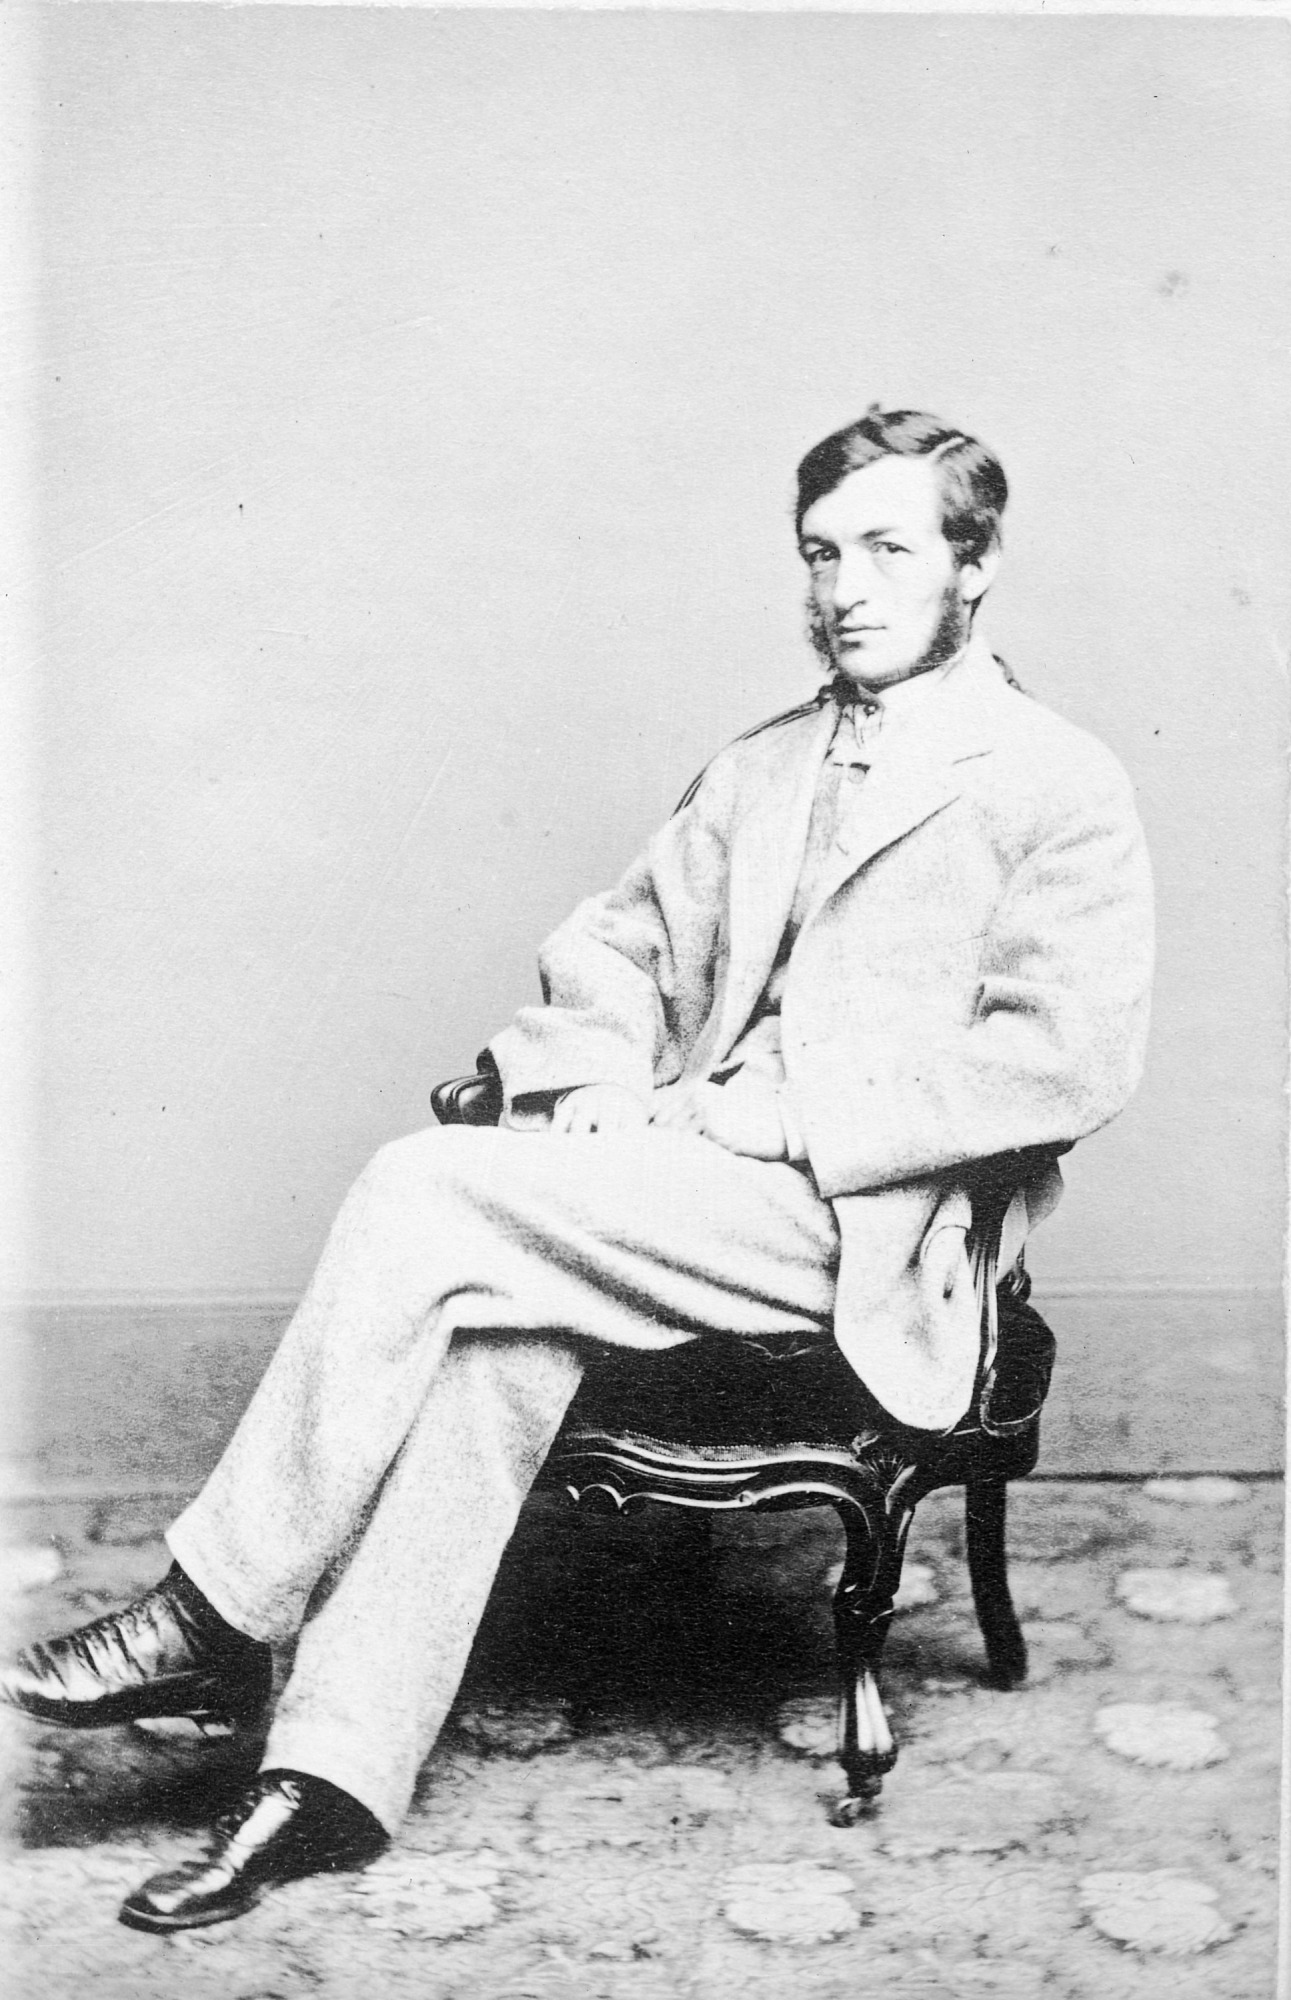 Samuel P. Langley, by Unknown, c. 1855, Smithsonian Archives - History Div, 10611 or MAH-10611.